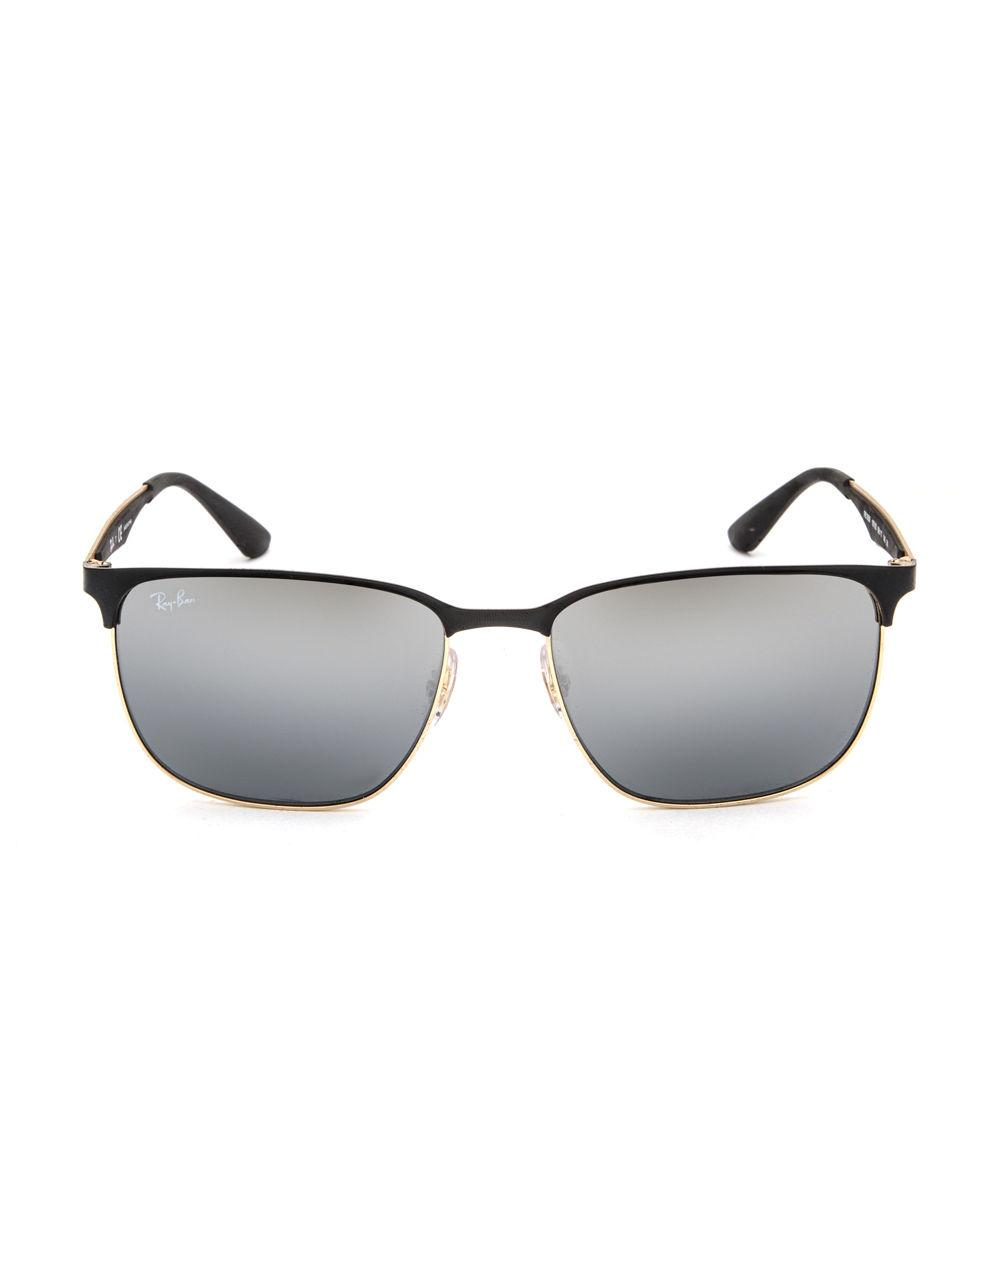 8e412140c3 Lyst - Ray-Ban Clubmaster Sunglasses in Metallic for Men